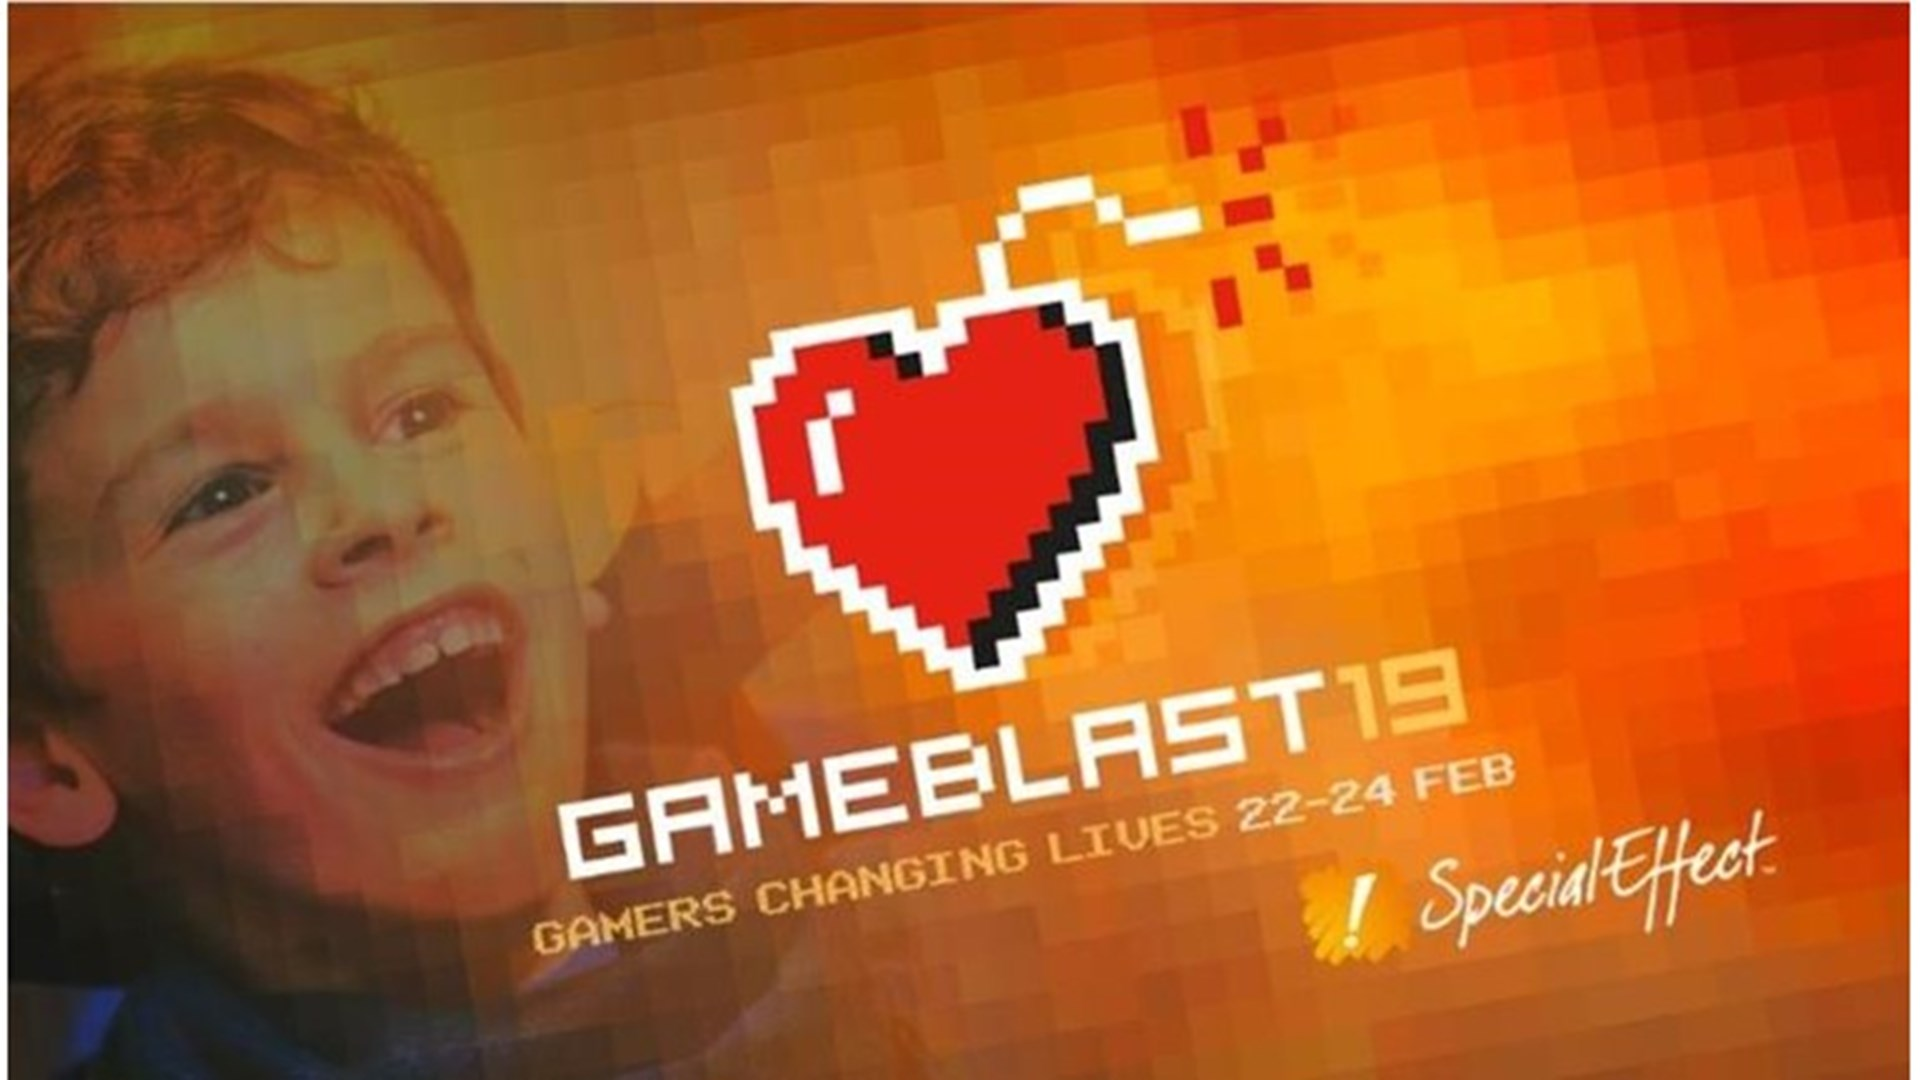 Blackbaud Charleston is fundraising for SpecialEffect 1920x1080